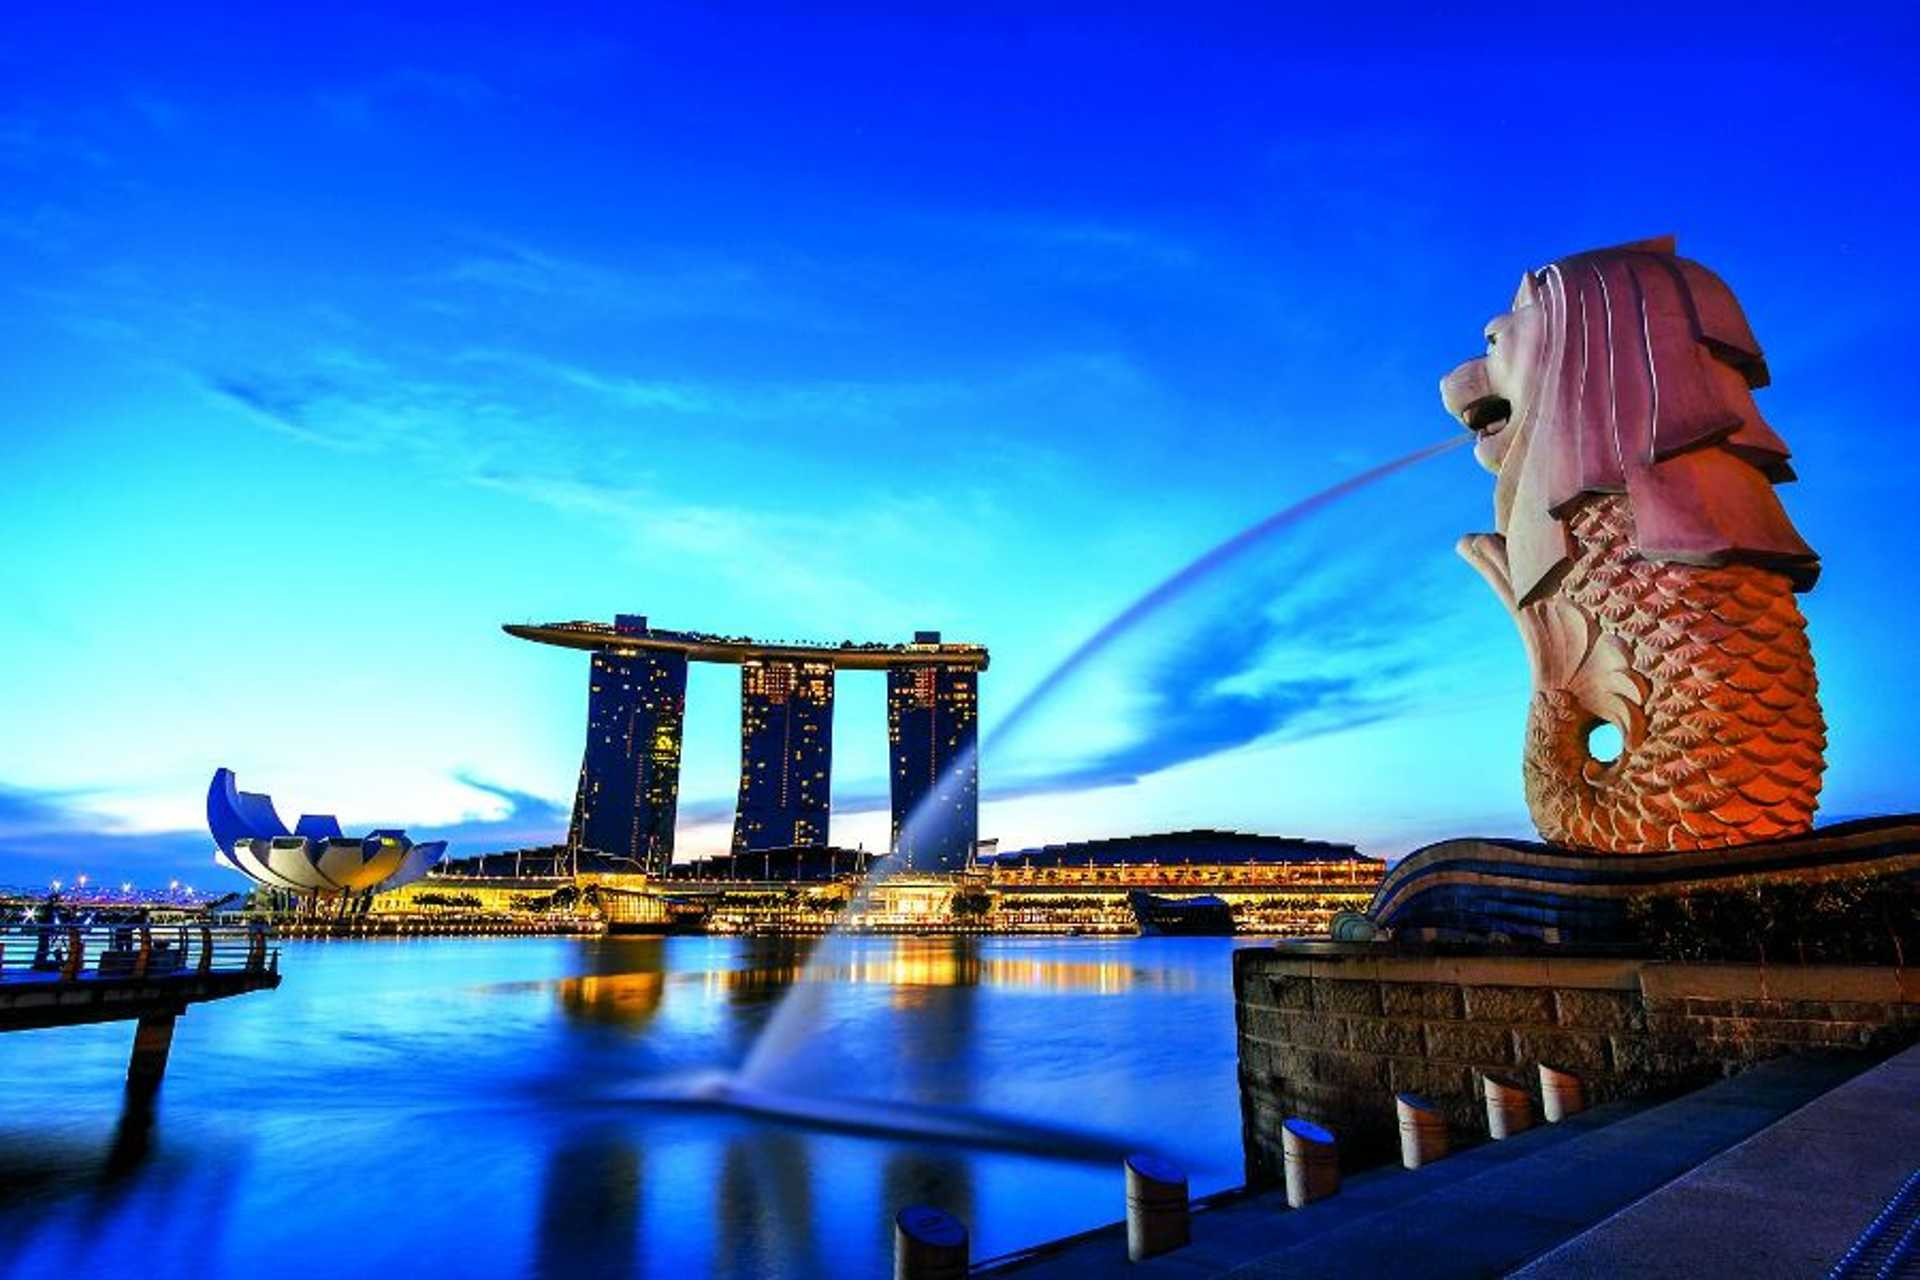 Merlion and the modern landscape of Singapore